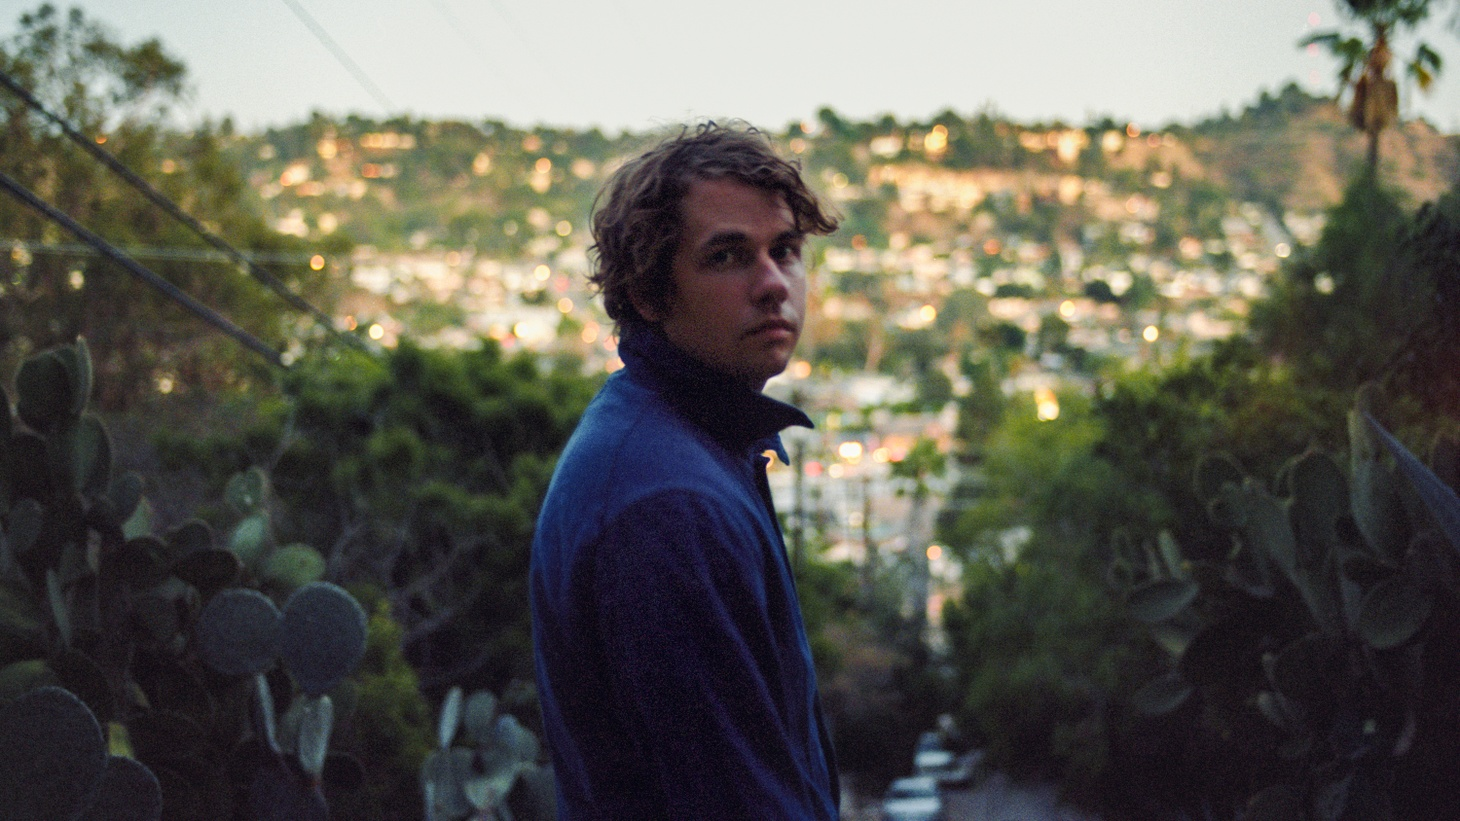 When Kevin Morby moved to LA's Mount Washington neighborhood a couple of years ago, he found the previous tenant's upright piano. A fortuitous find all around since the piano became the spark for a batch of new songs.